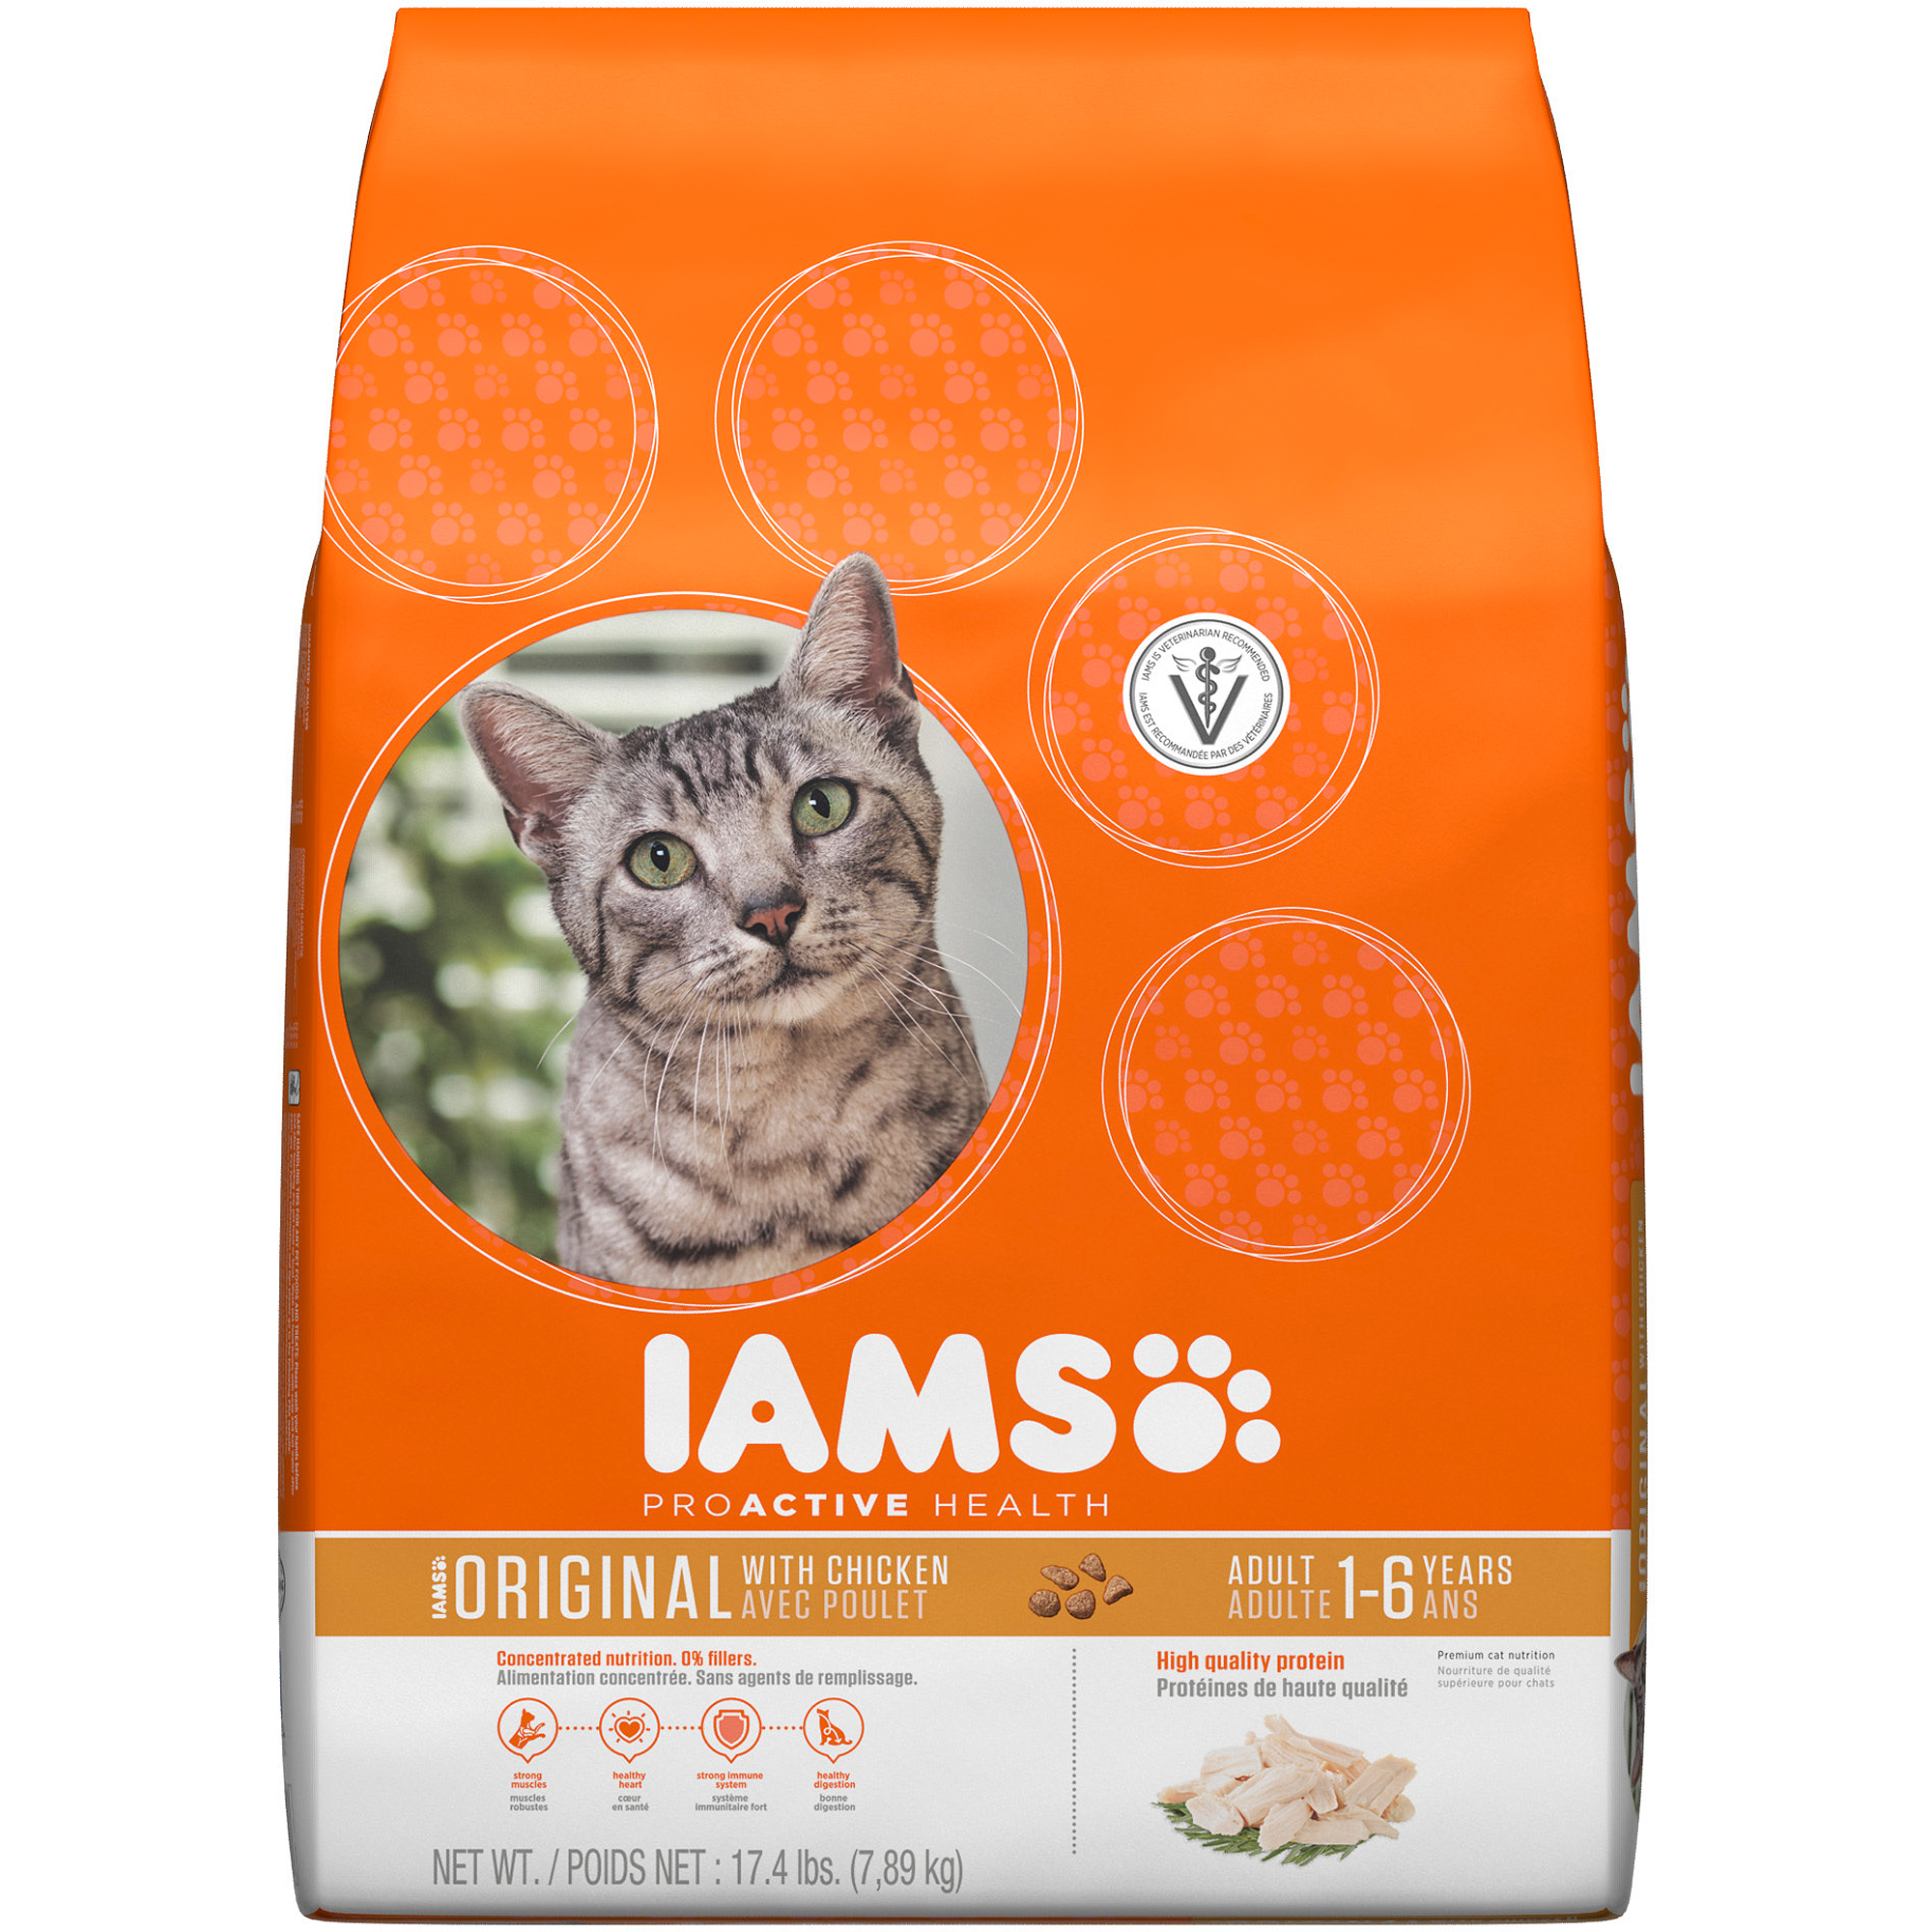 Iams ProActive Health Original with Chicken Premium Dry Cat Food 17.4 lbs